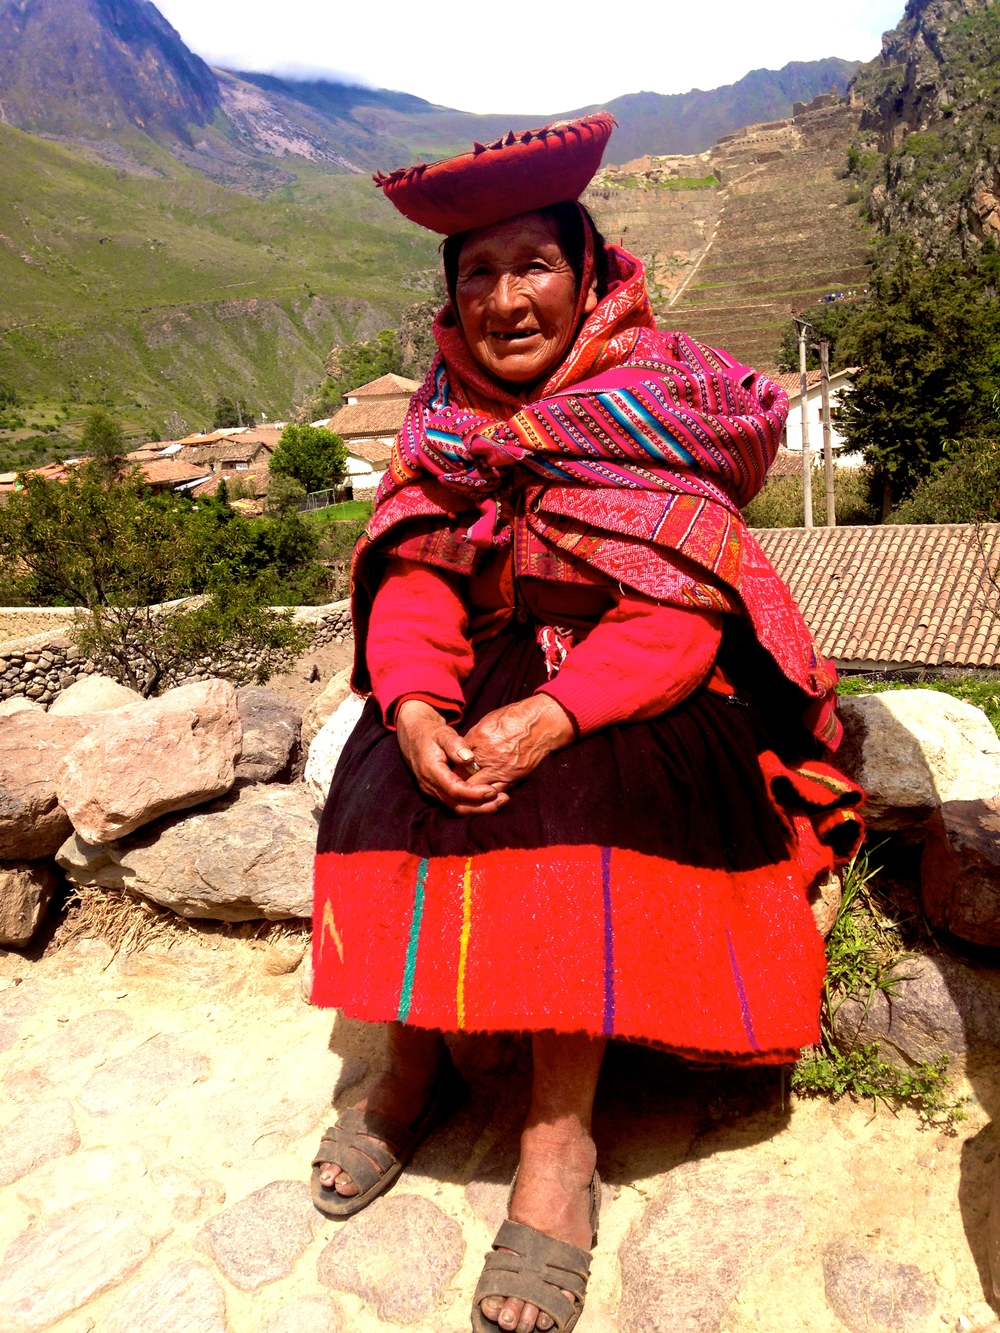 Down from the mountains for market day, Ollantaytambo, Peru.